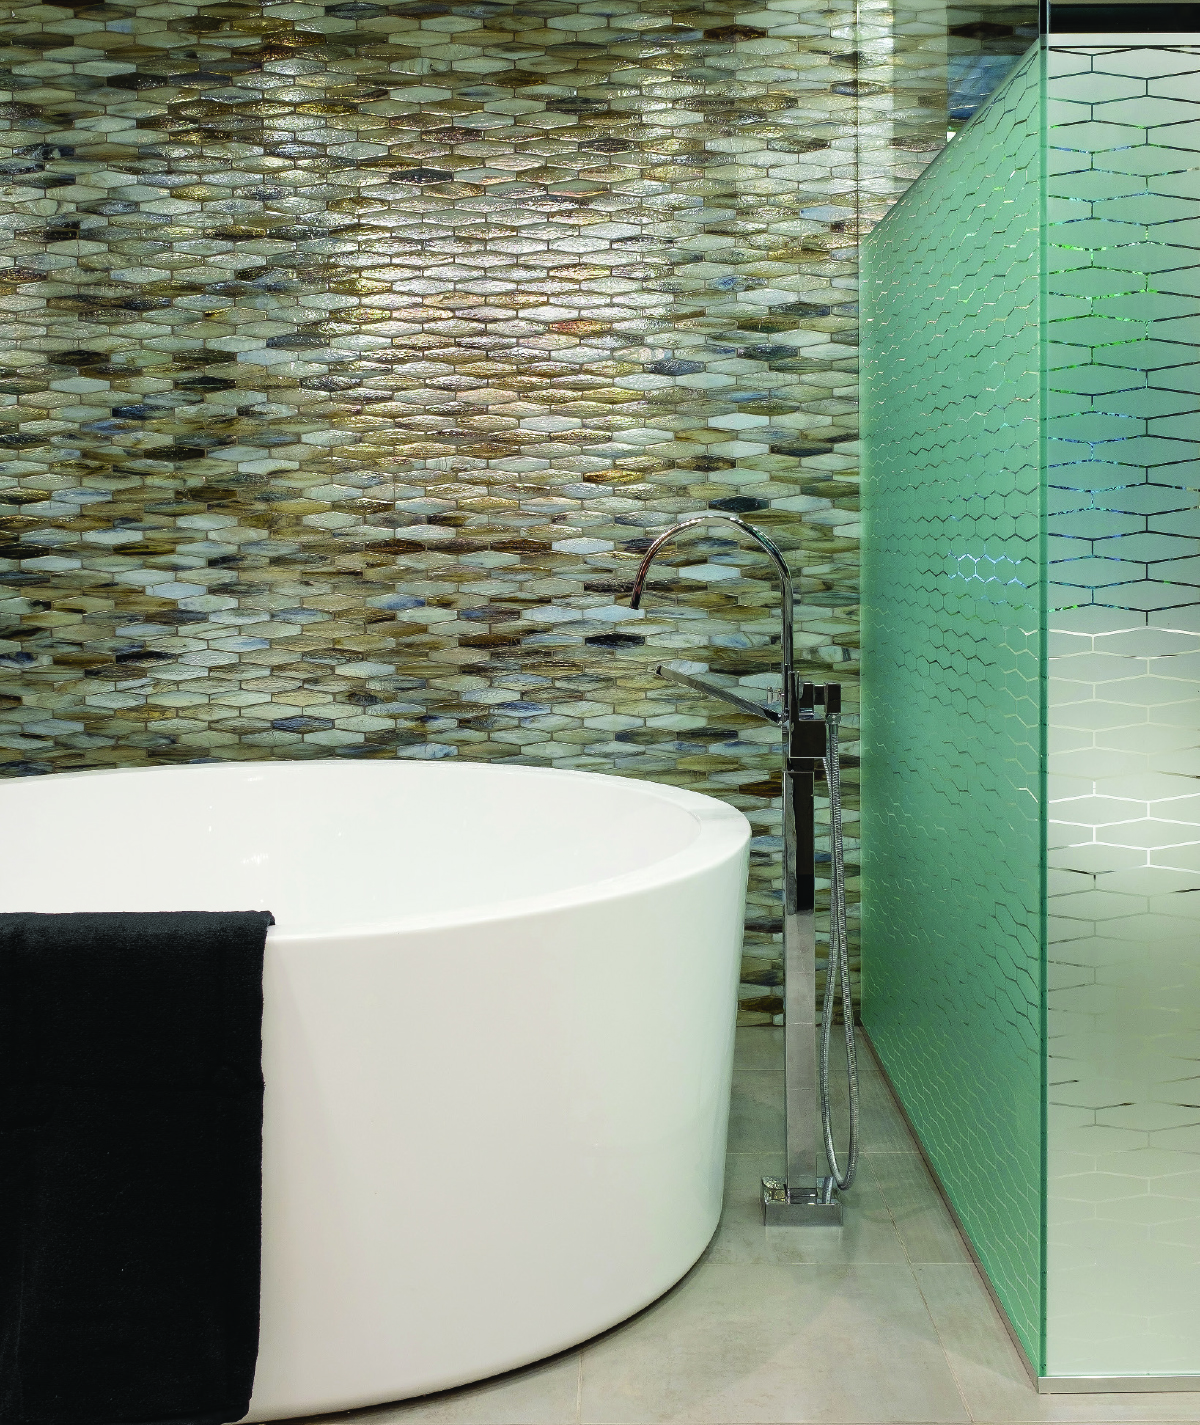 White bathtub with stone walls and glass shower